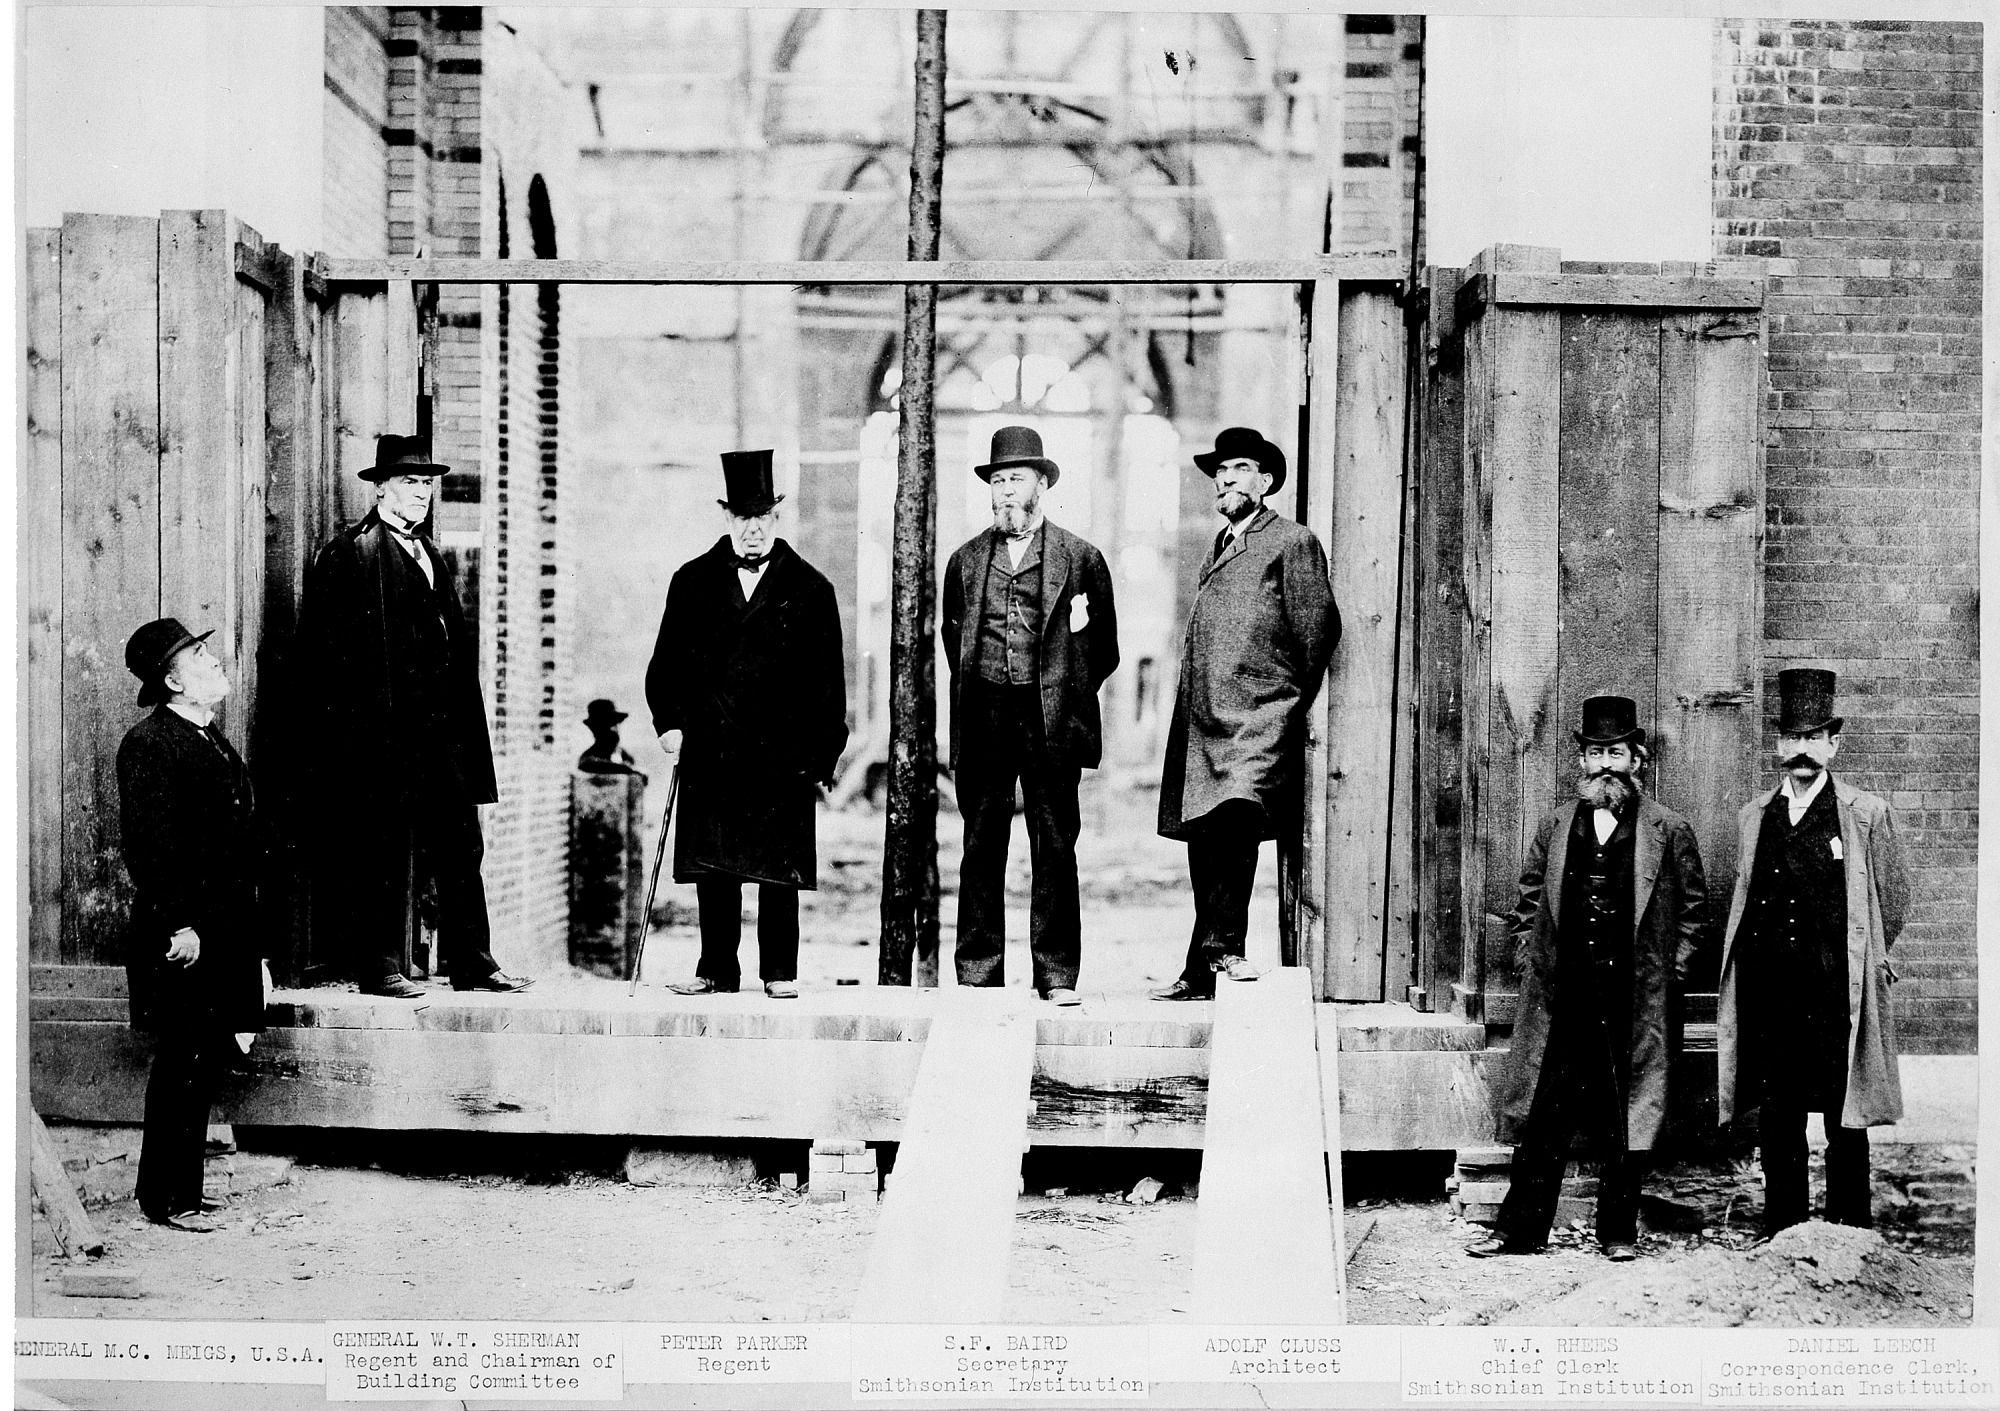 National Museum Building Committee, 1880